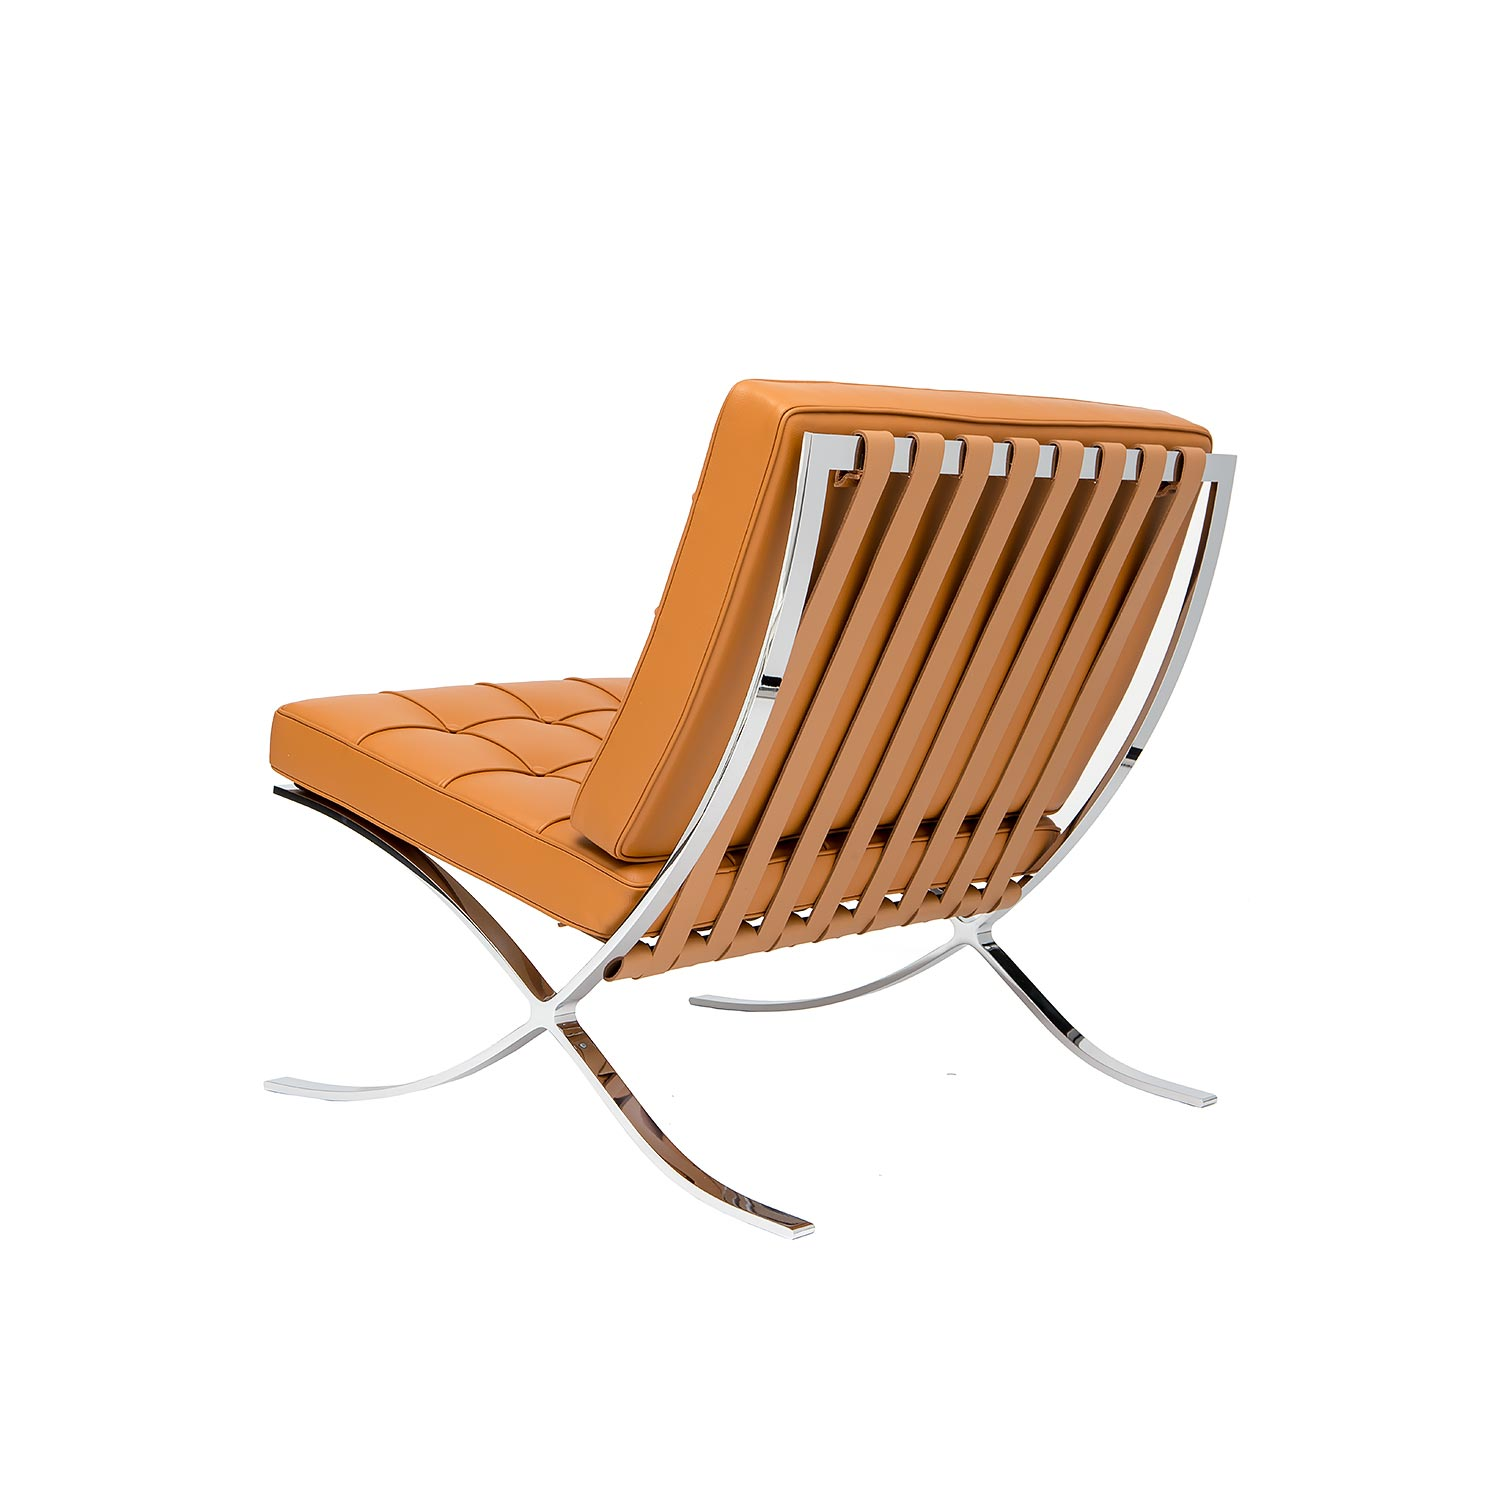 barcelona style chair by mies van der rohe steelform design classics barcelona style chair